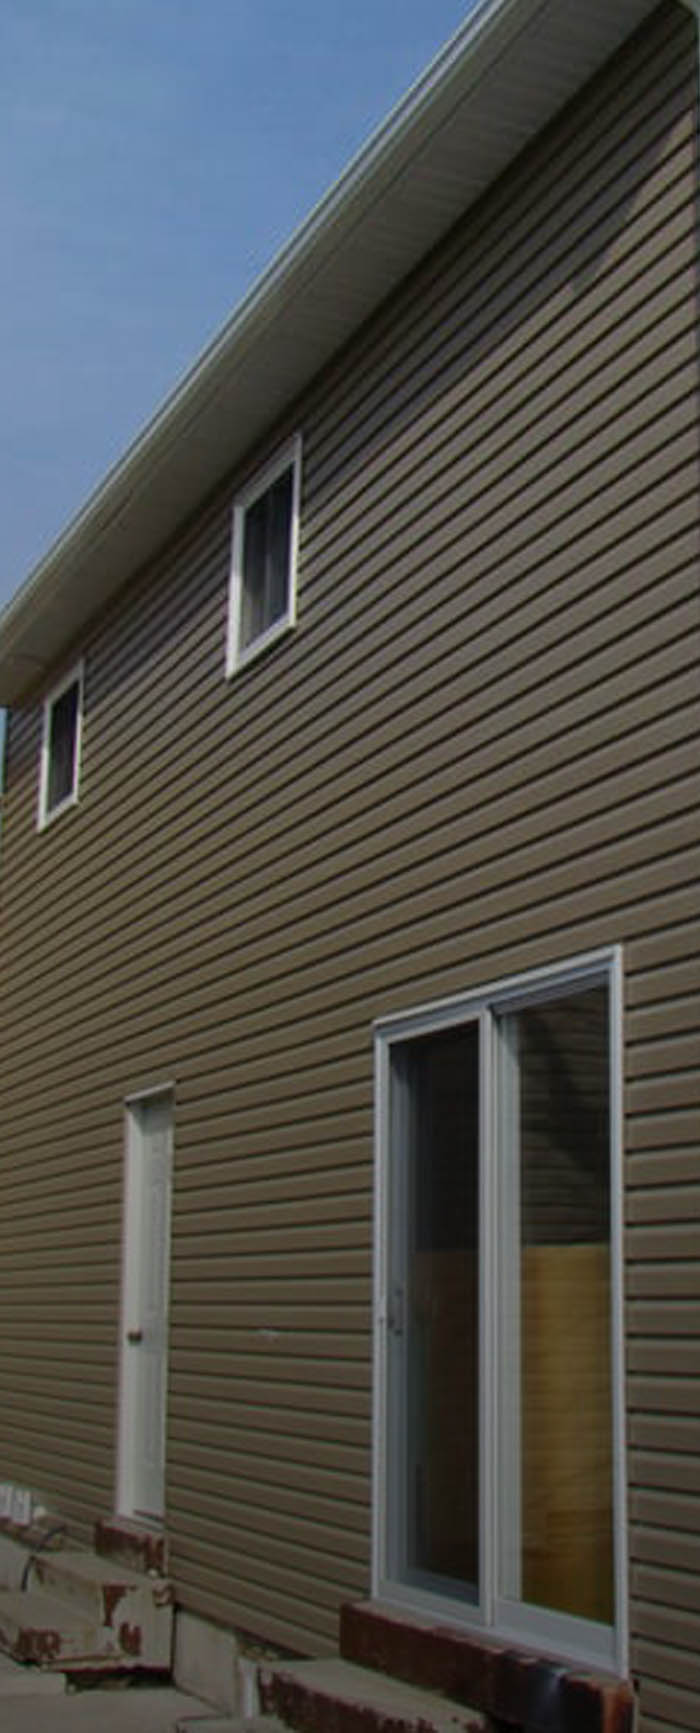 Residential Siding Winnipeg Exterior Siding Contractors